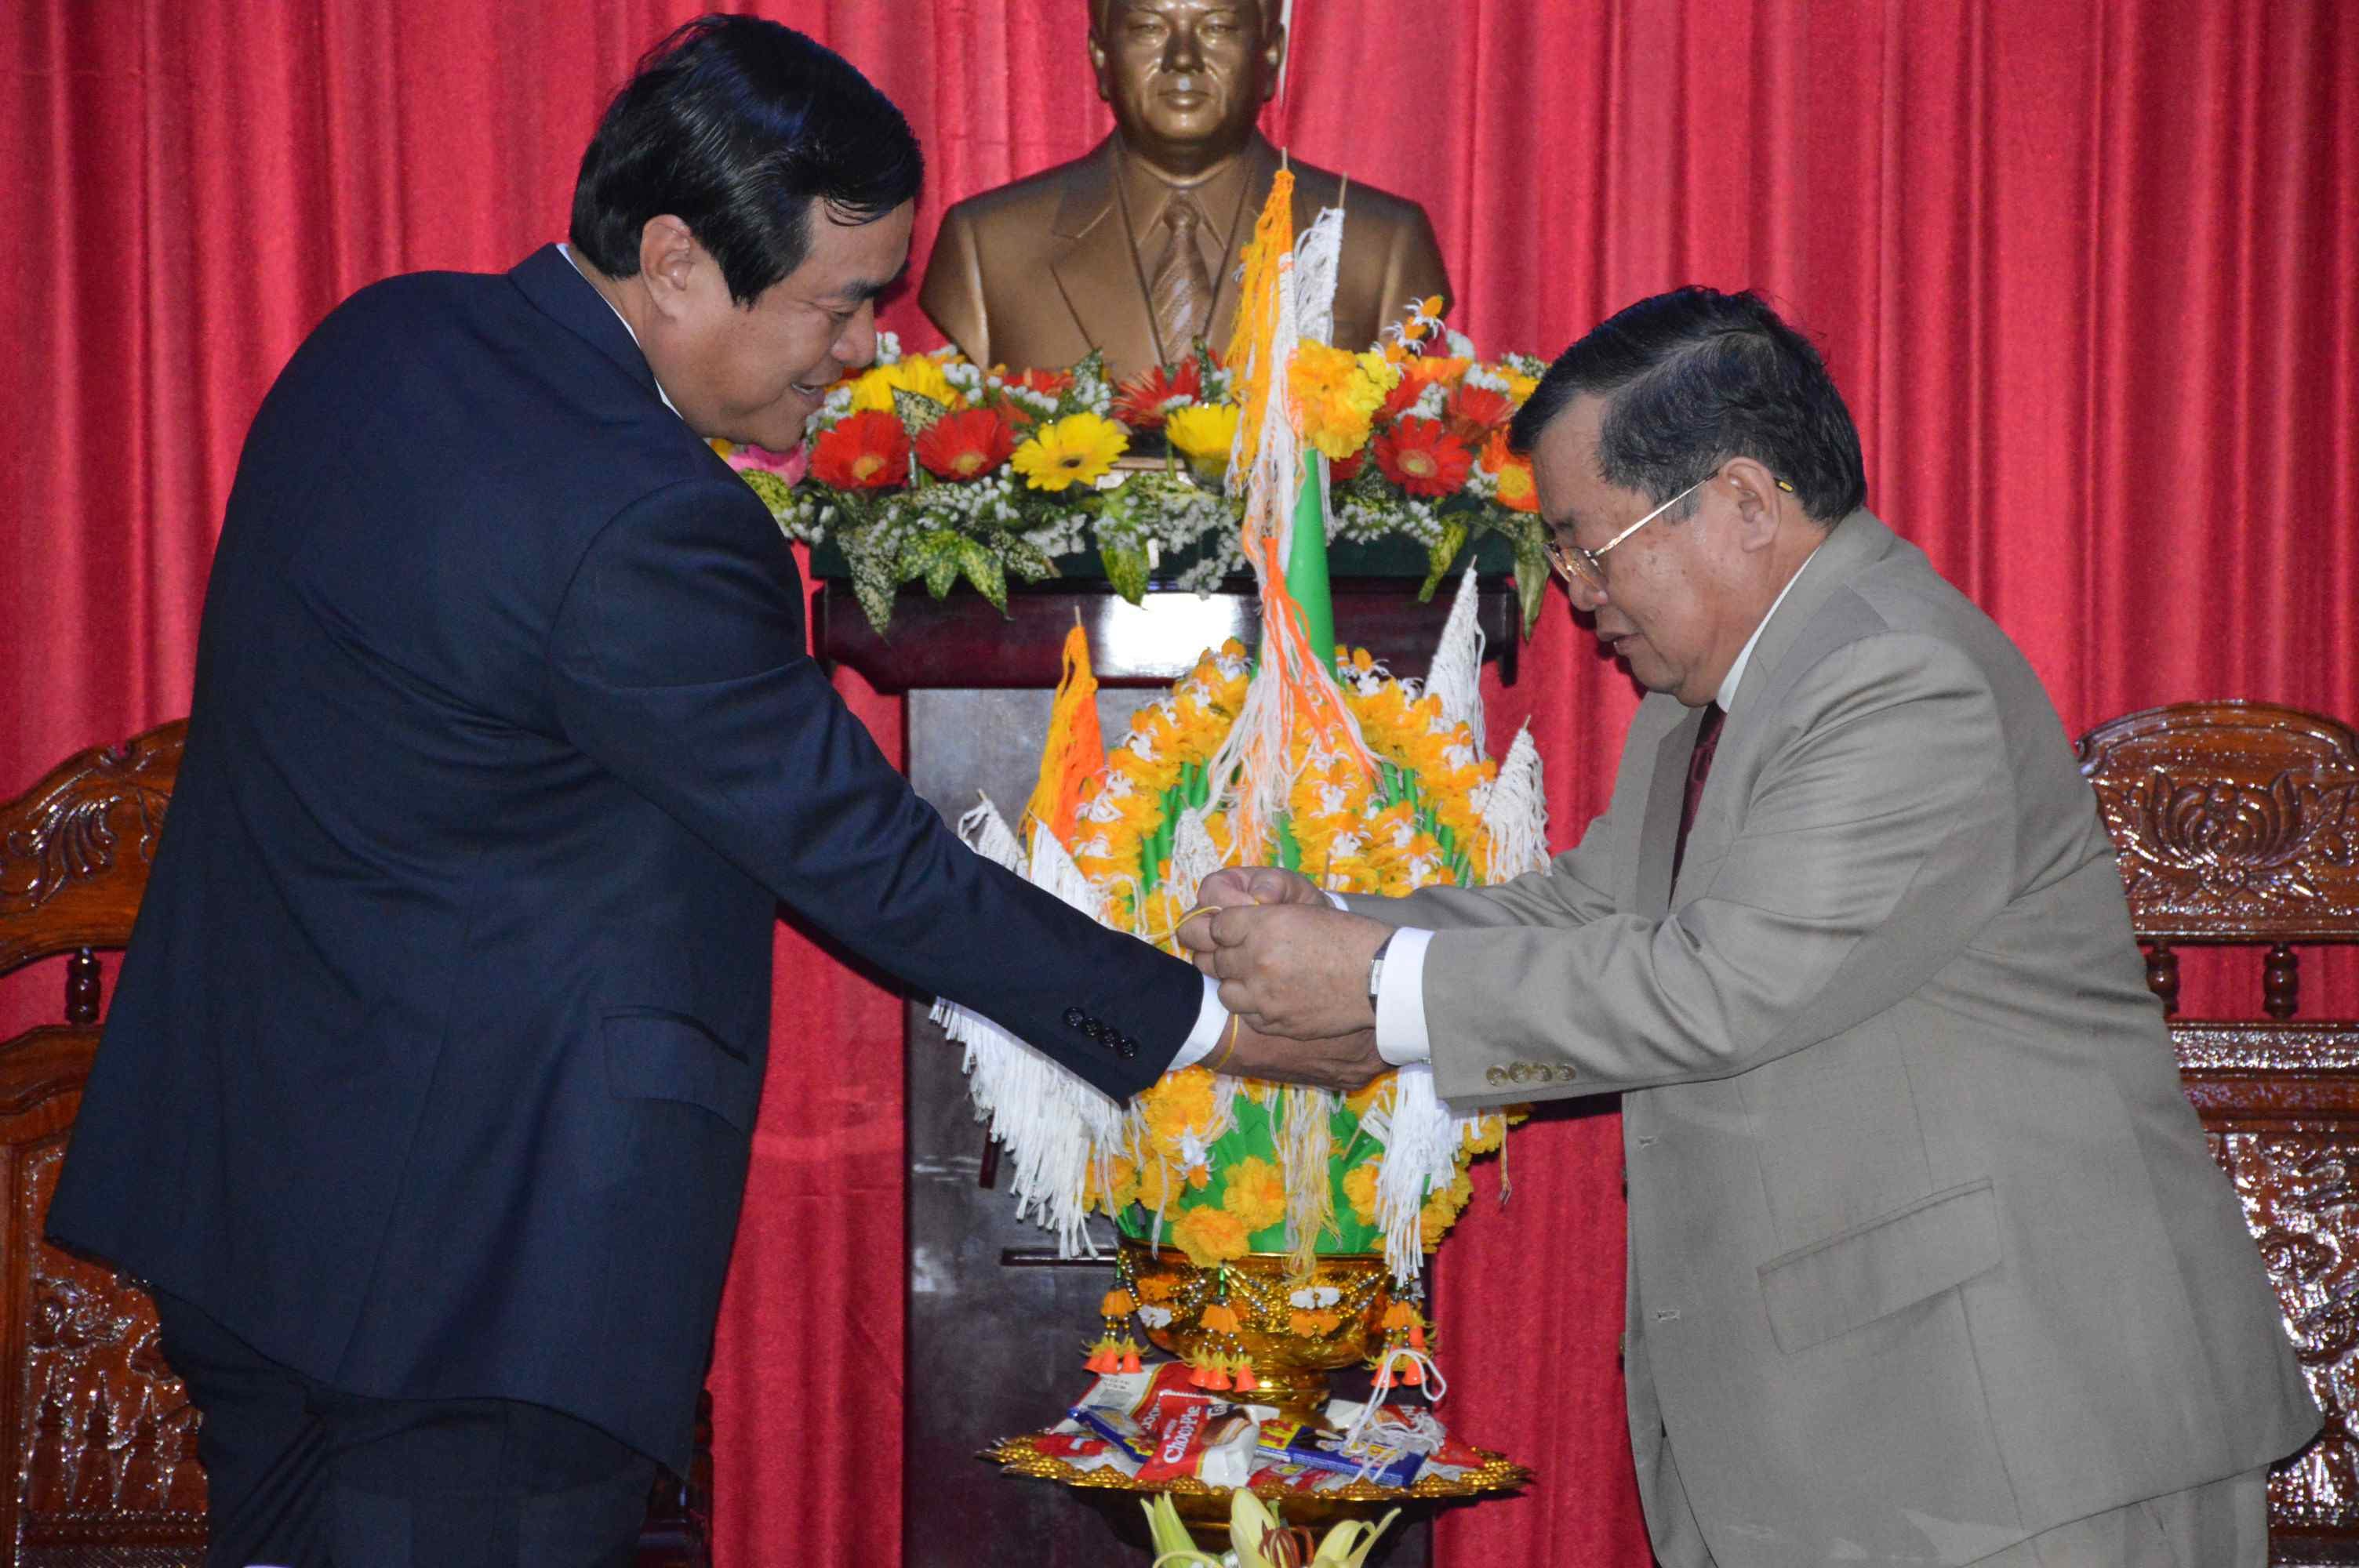 Consul General Phommaseng Khamsene (right) fastens the thread on Mr Cuong's wrist as a traditional ritual of Lao New Year